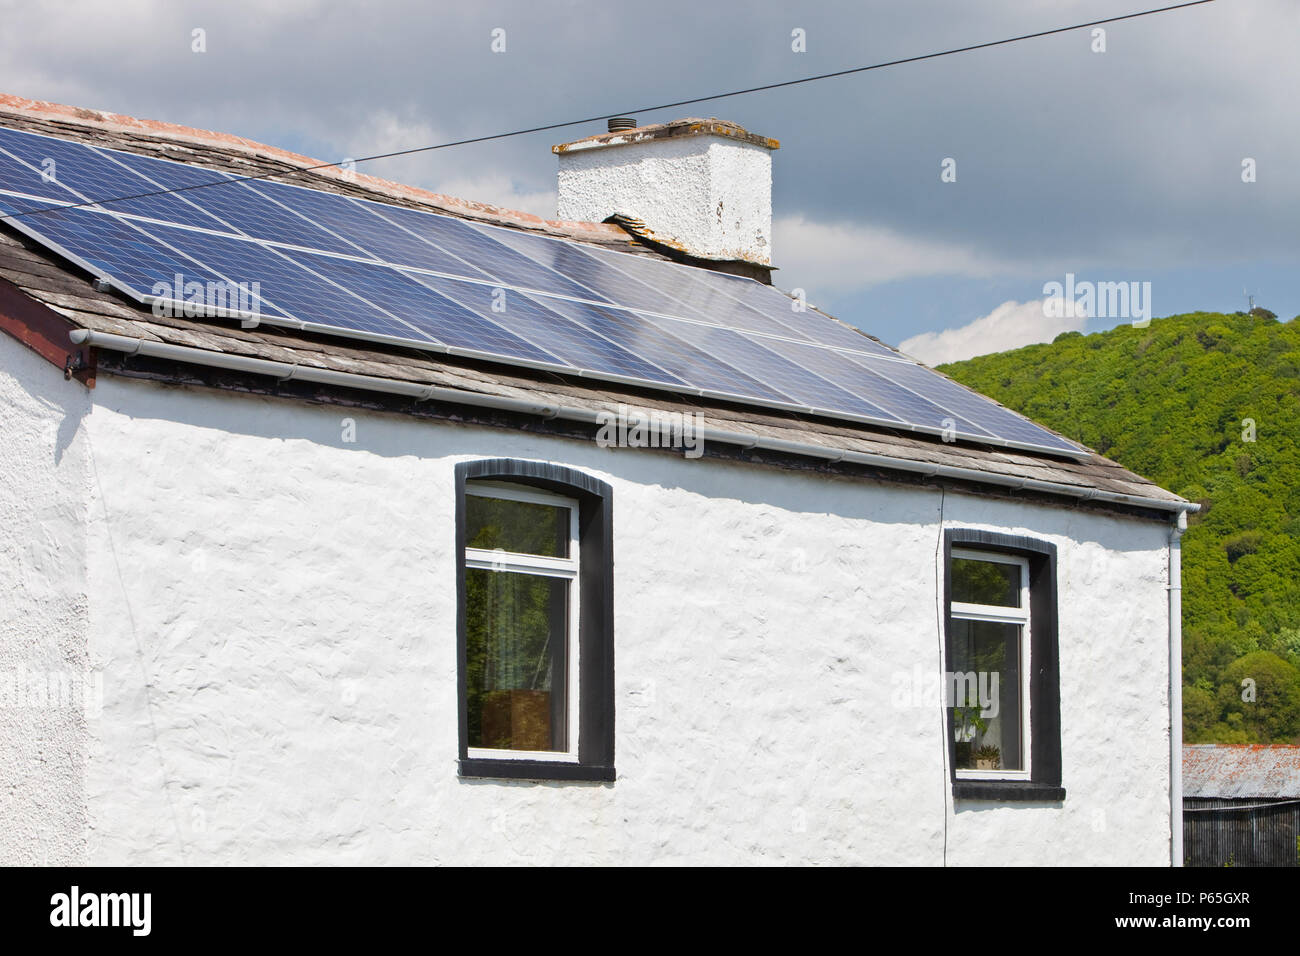 A 3 kilowatt solar voltaic panel array on an old house in Blawith, South Cumbria, UK. - Stock Image